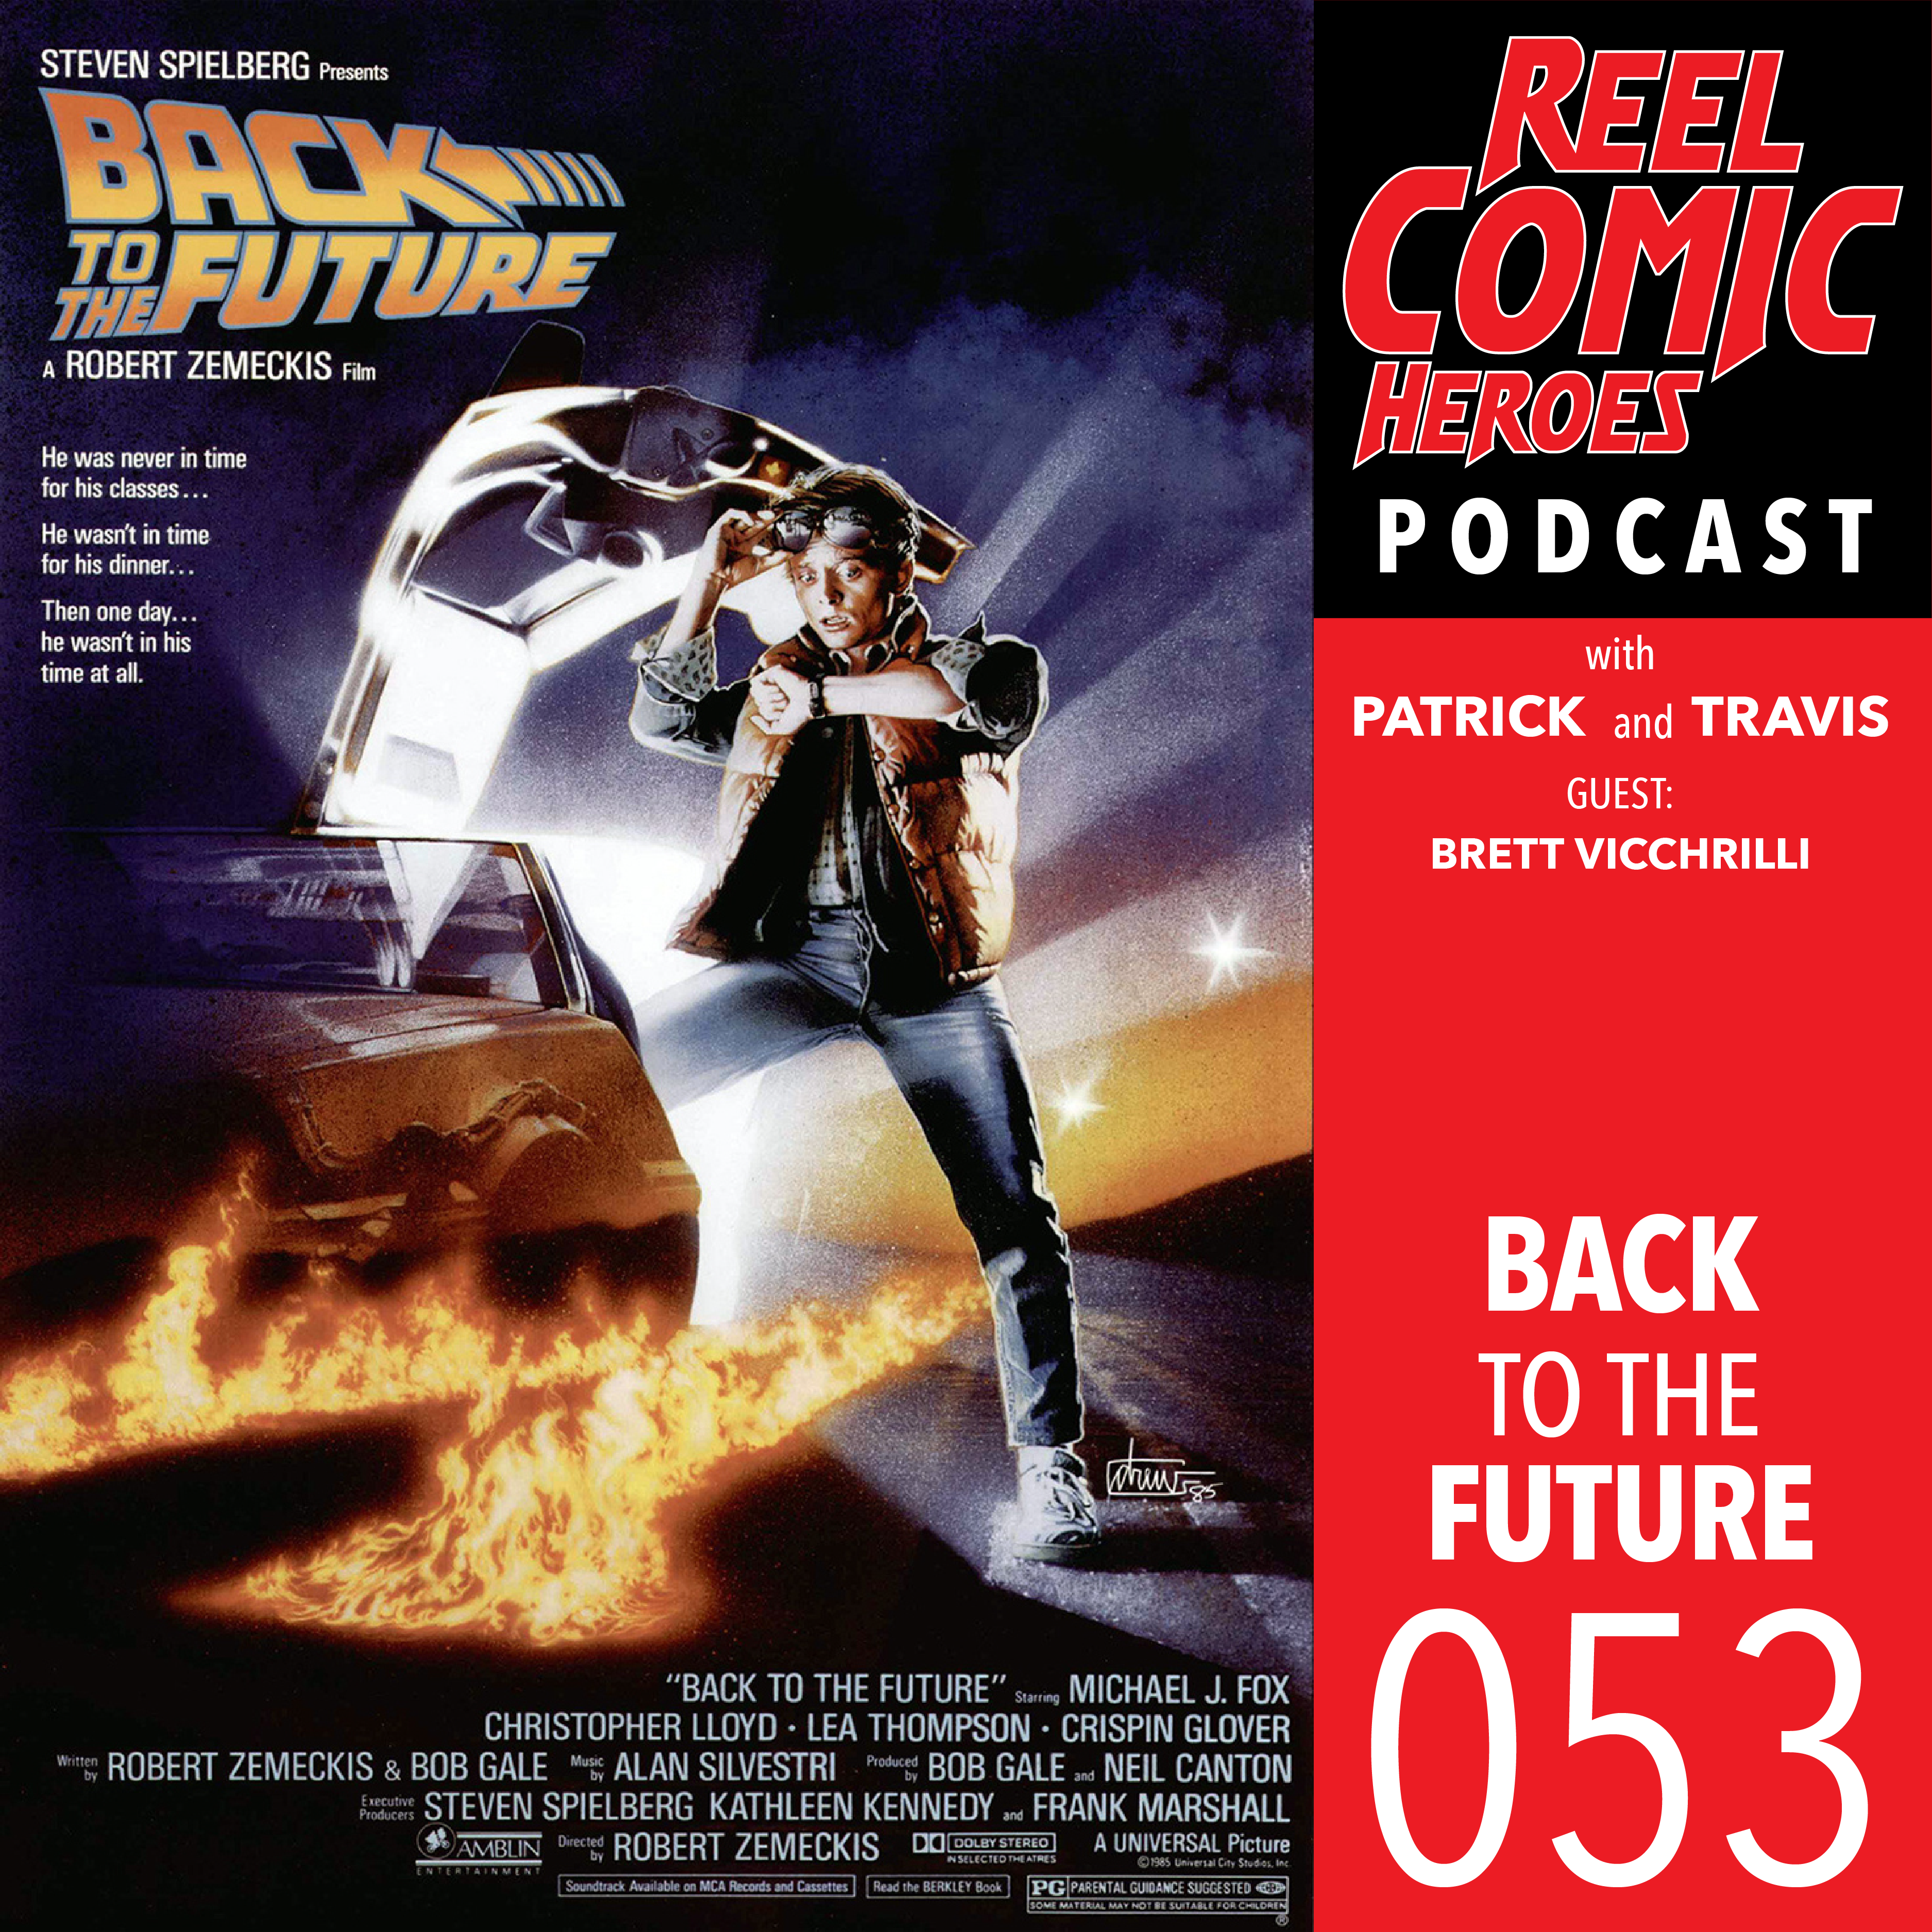 Artwork for Reel Comic Heroes 053 - Back to the Future with Brett Vicchrilli